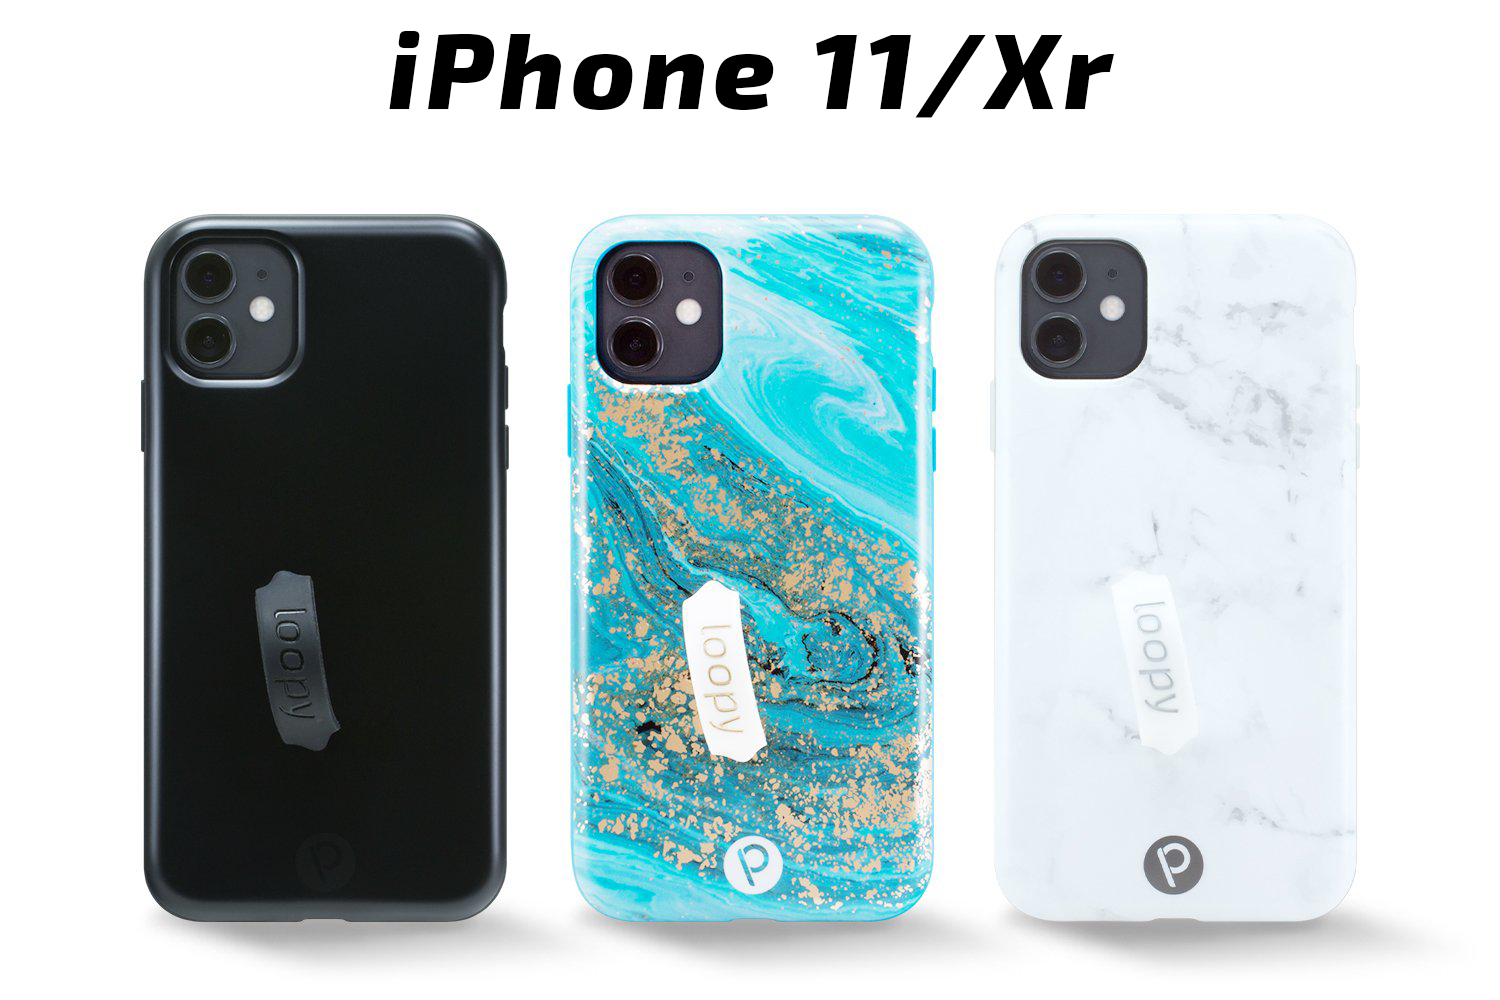 Shop Loopy iPhone 11/Xr